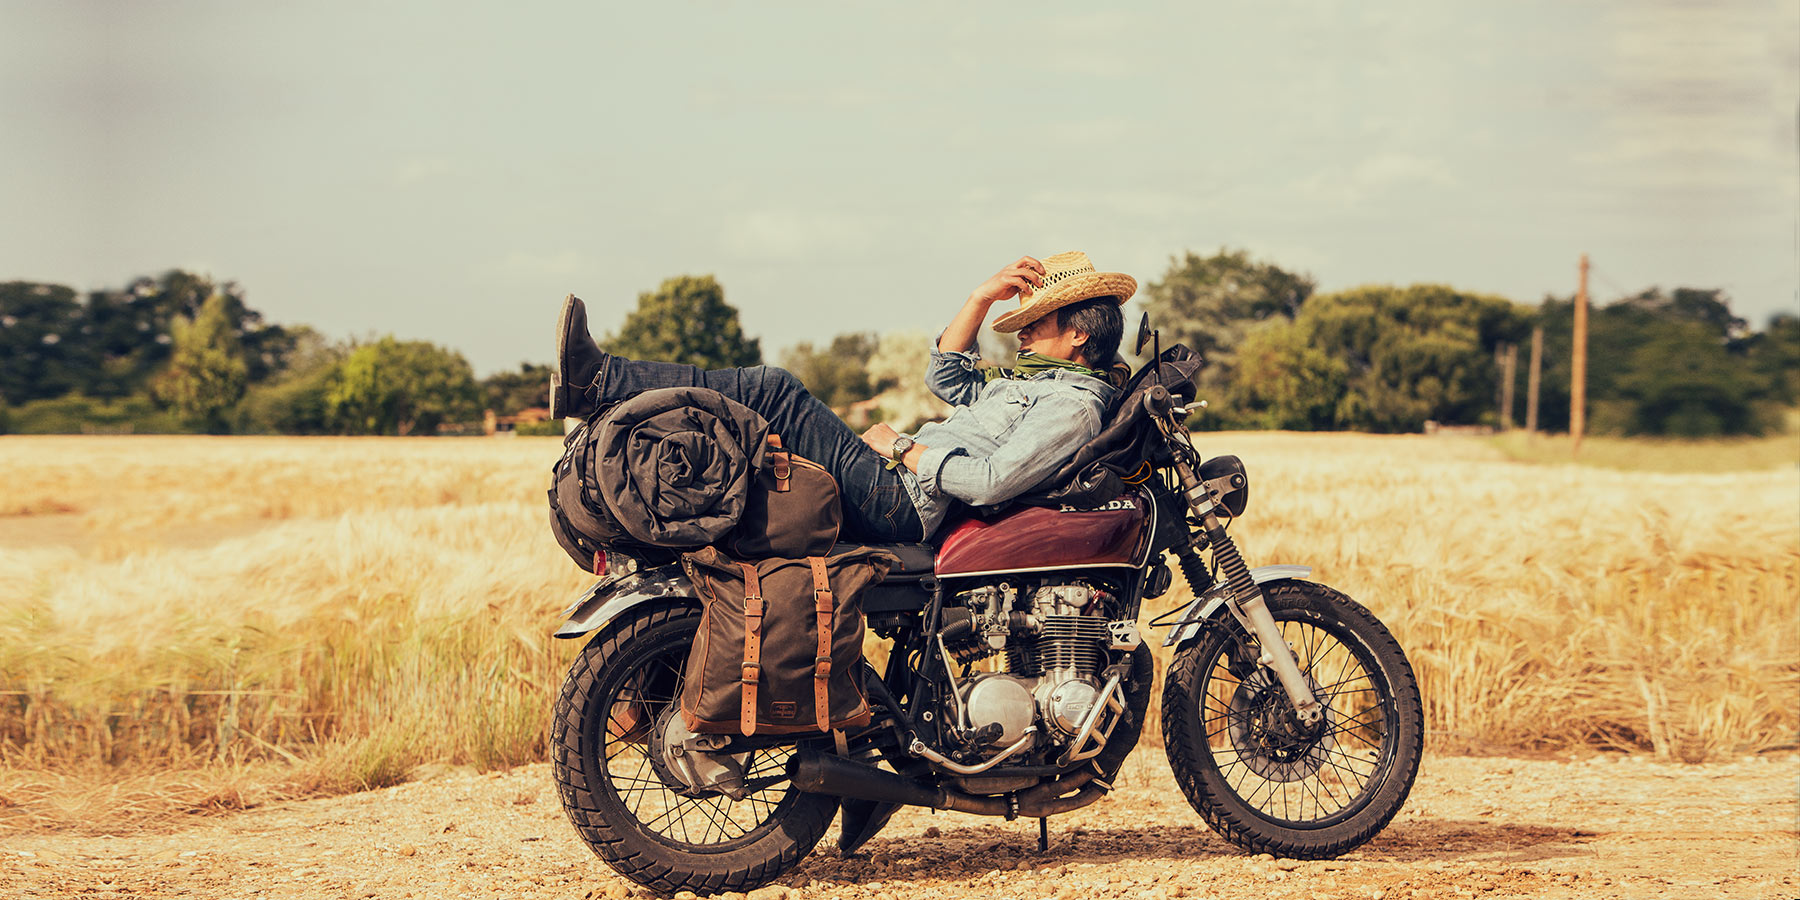 Biker sleeping on retro motorcycle with soft saddlebags.